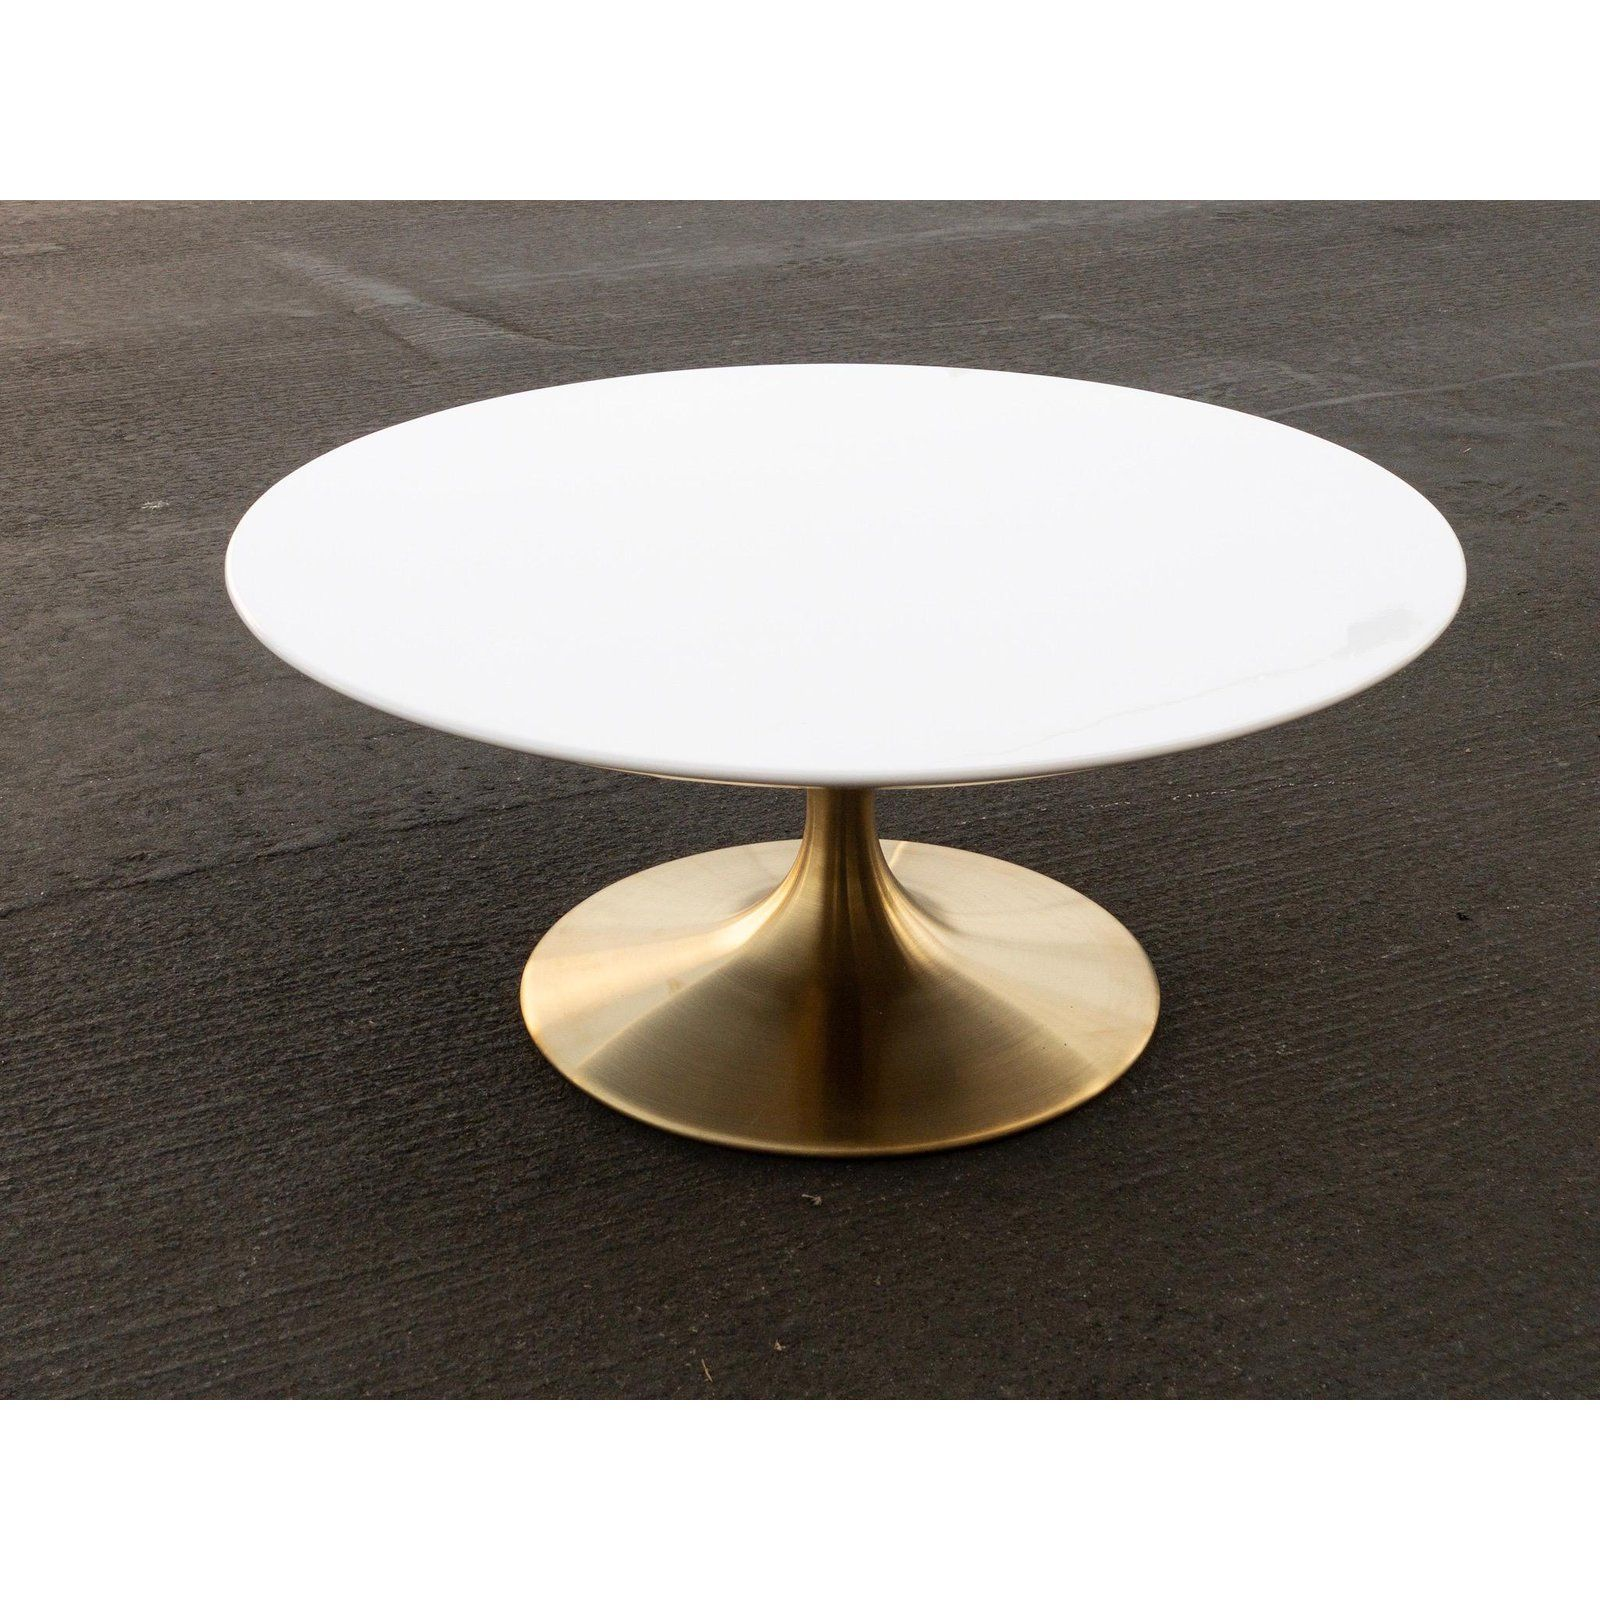 Mid Century Modern Tulip Coffee Table With Gold Base For Sale Image 4 Of 4 Tulip Coffee Table Coffee Table Marble End Tables [ 1600 x 1600 Pixel ]